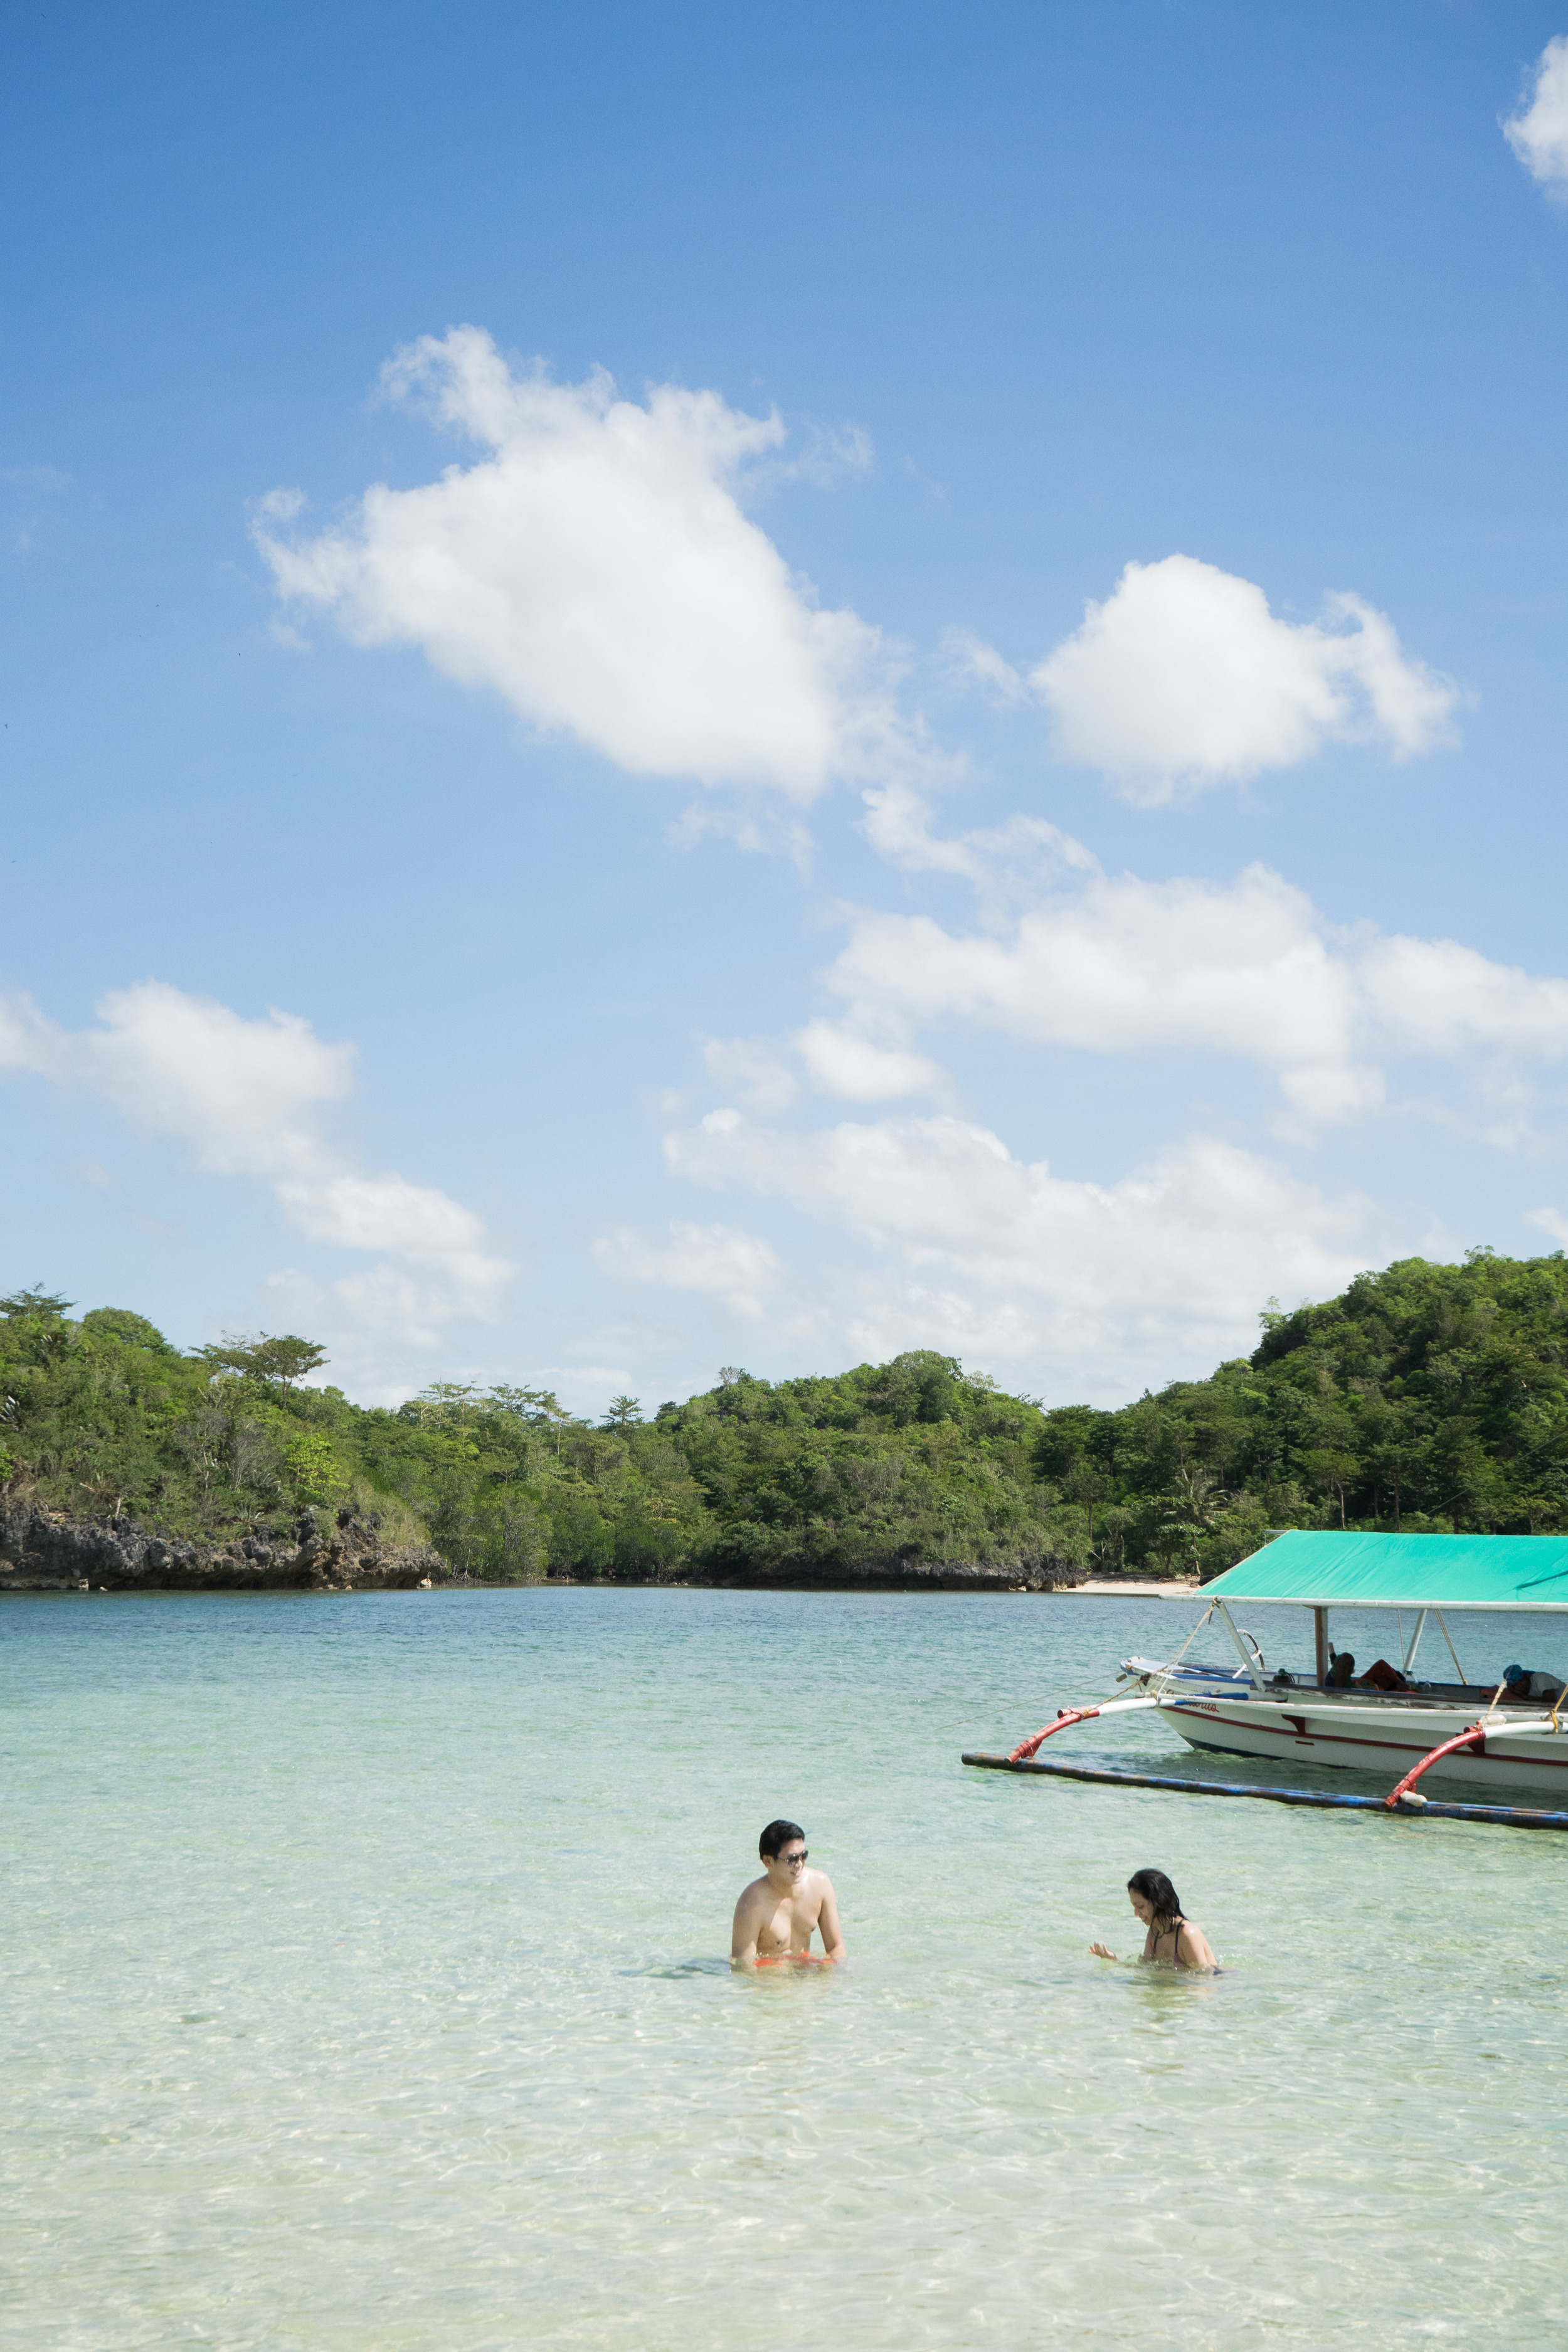 Crystal clear waters in Guimaras!